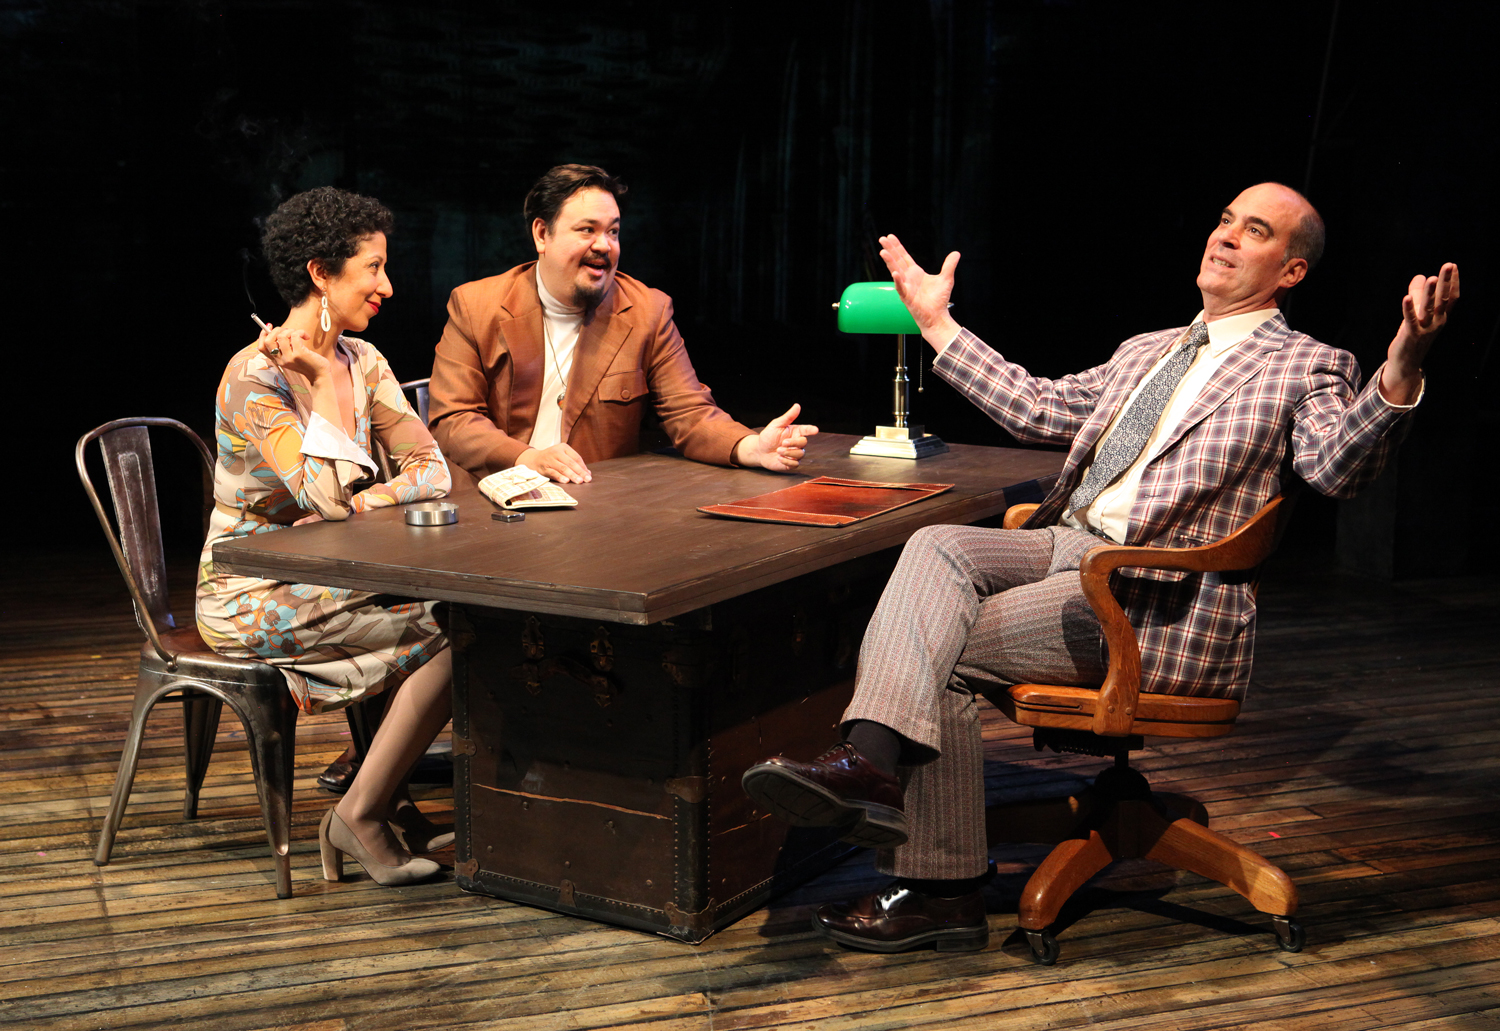 (L to R) Sarah Nina Hayon as Milagros, Chuck Lacson as Basilio, and Lawrence Radecker as Rick. (Photo by Jennifer Reiley)